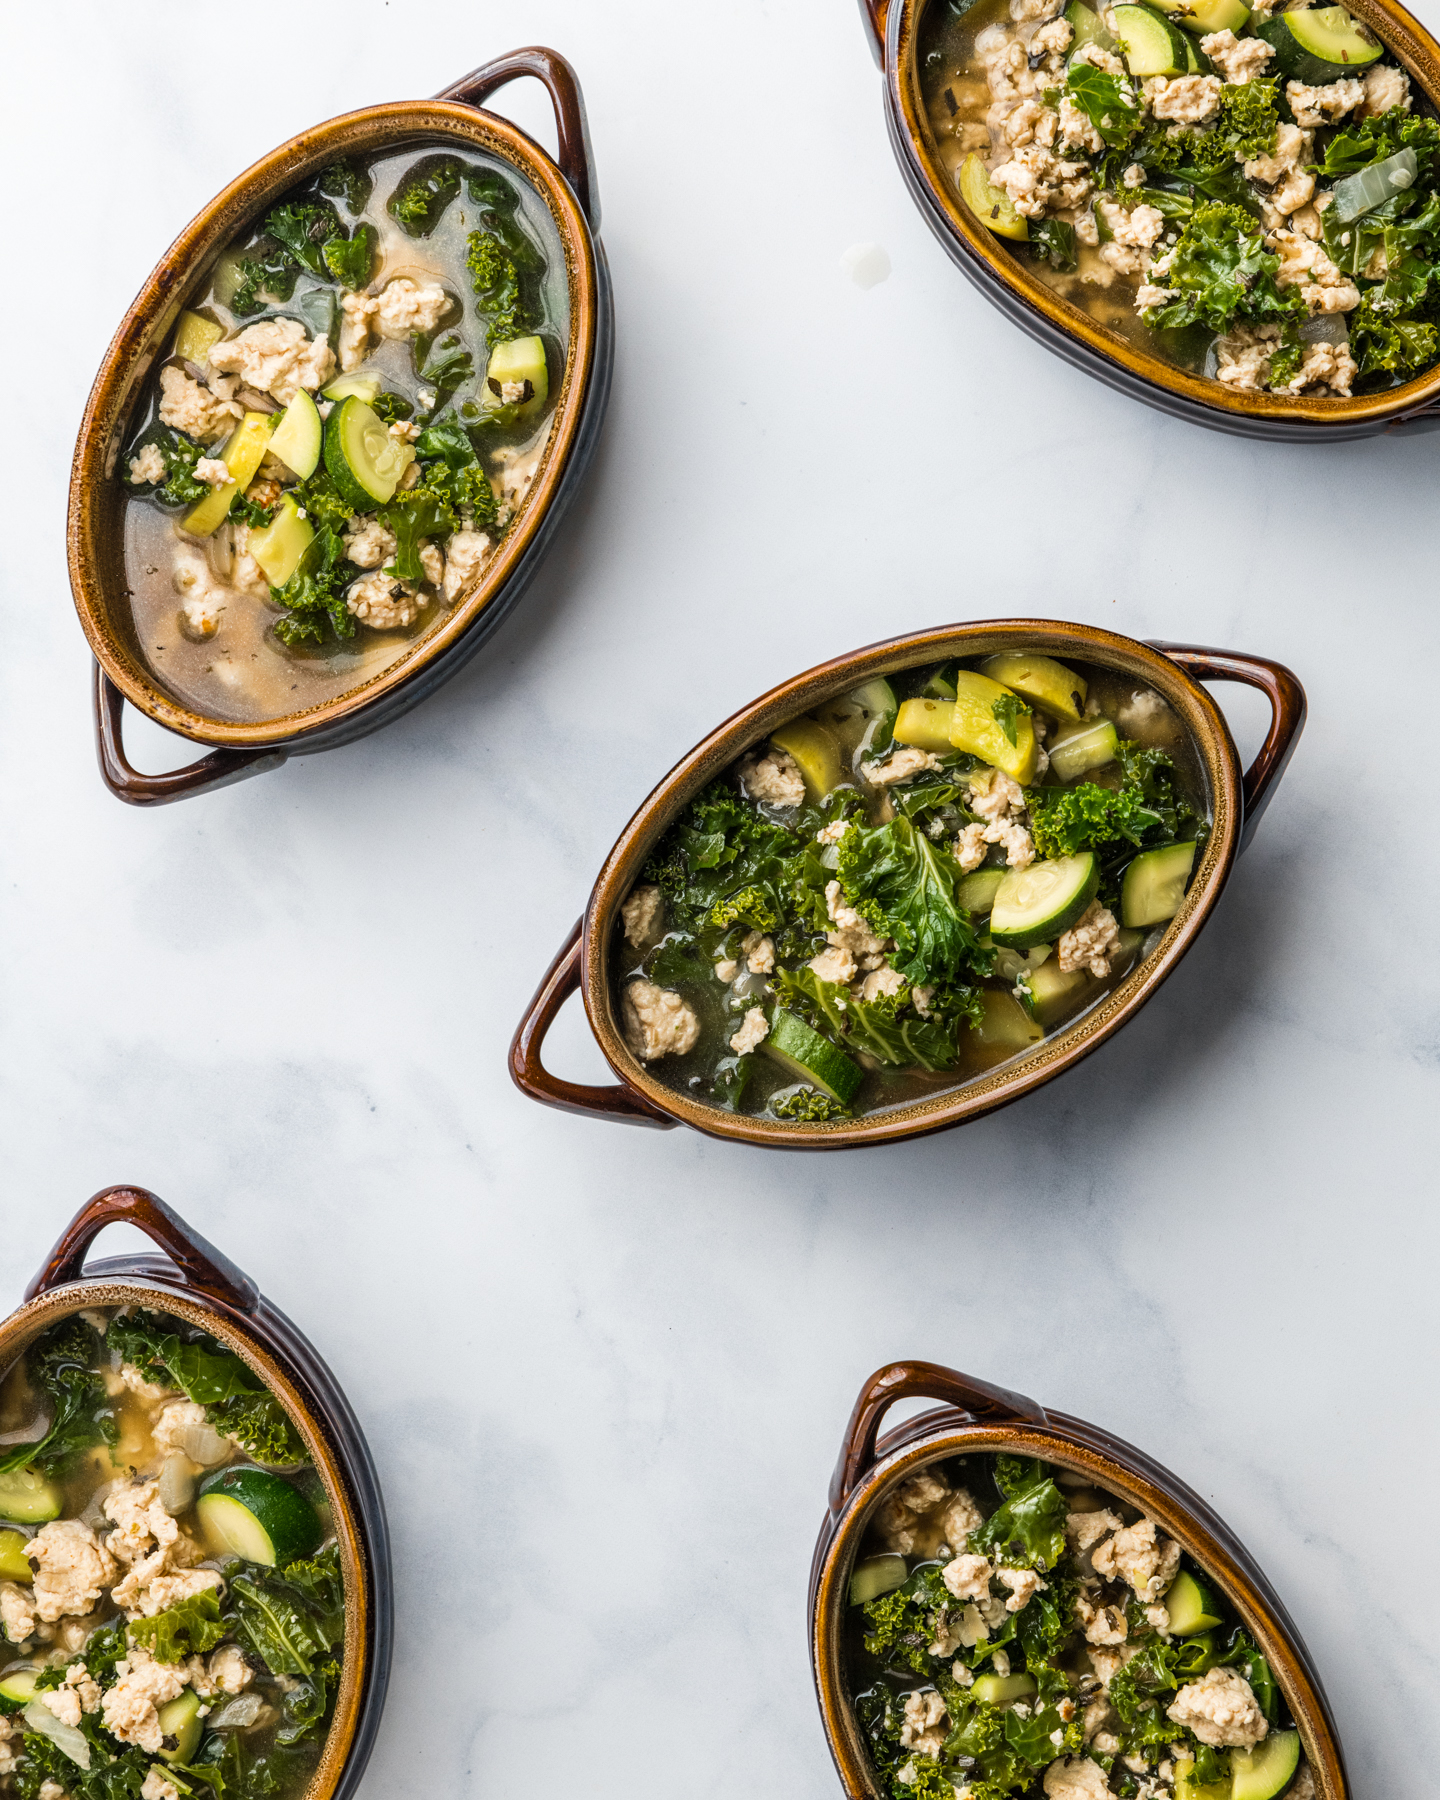 Chicken_Kale_Soup_-_Brown_Bowls-1.jpg